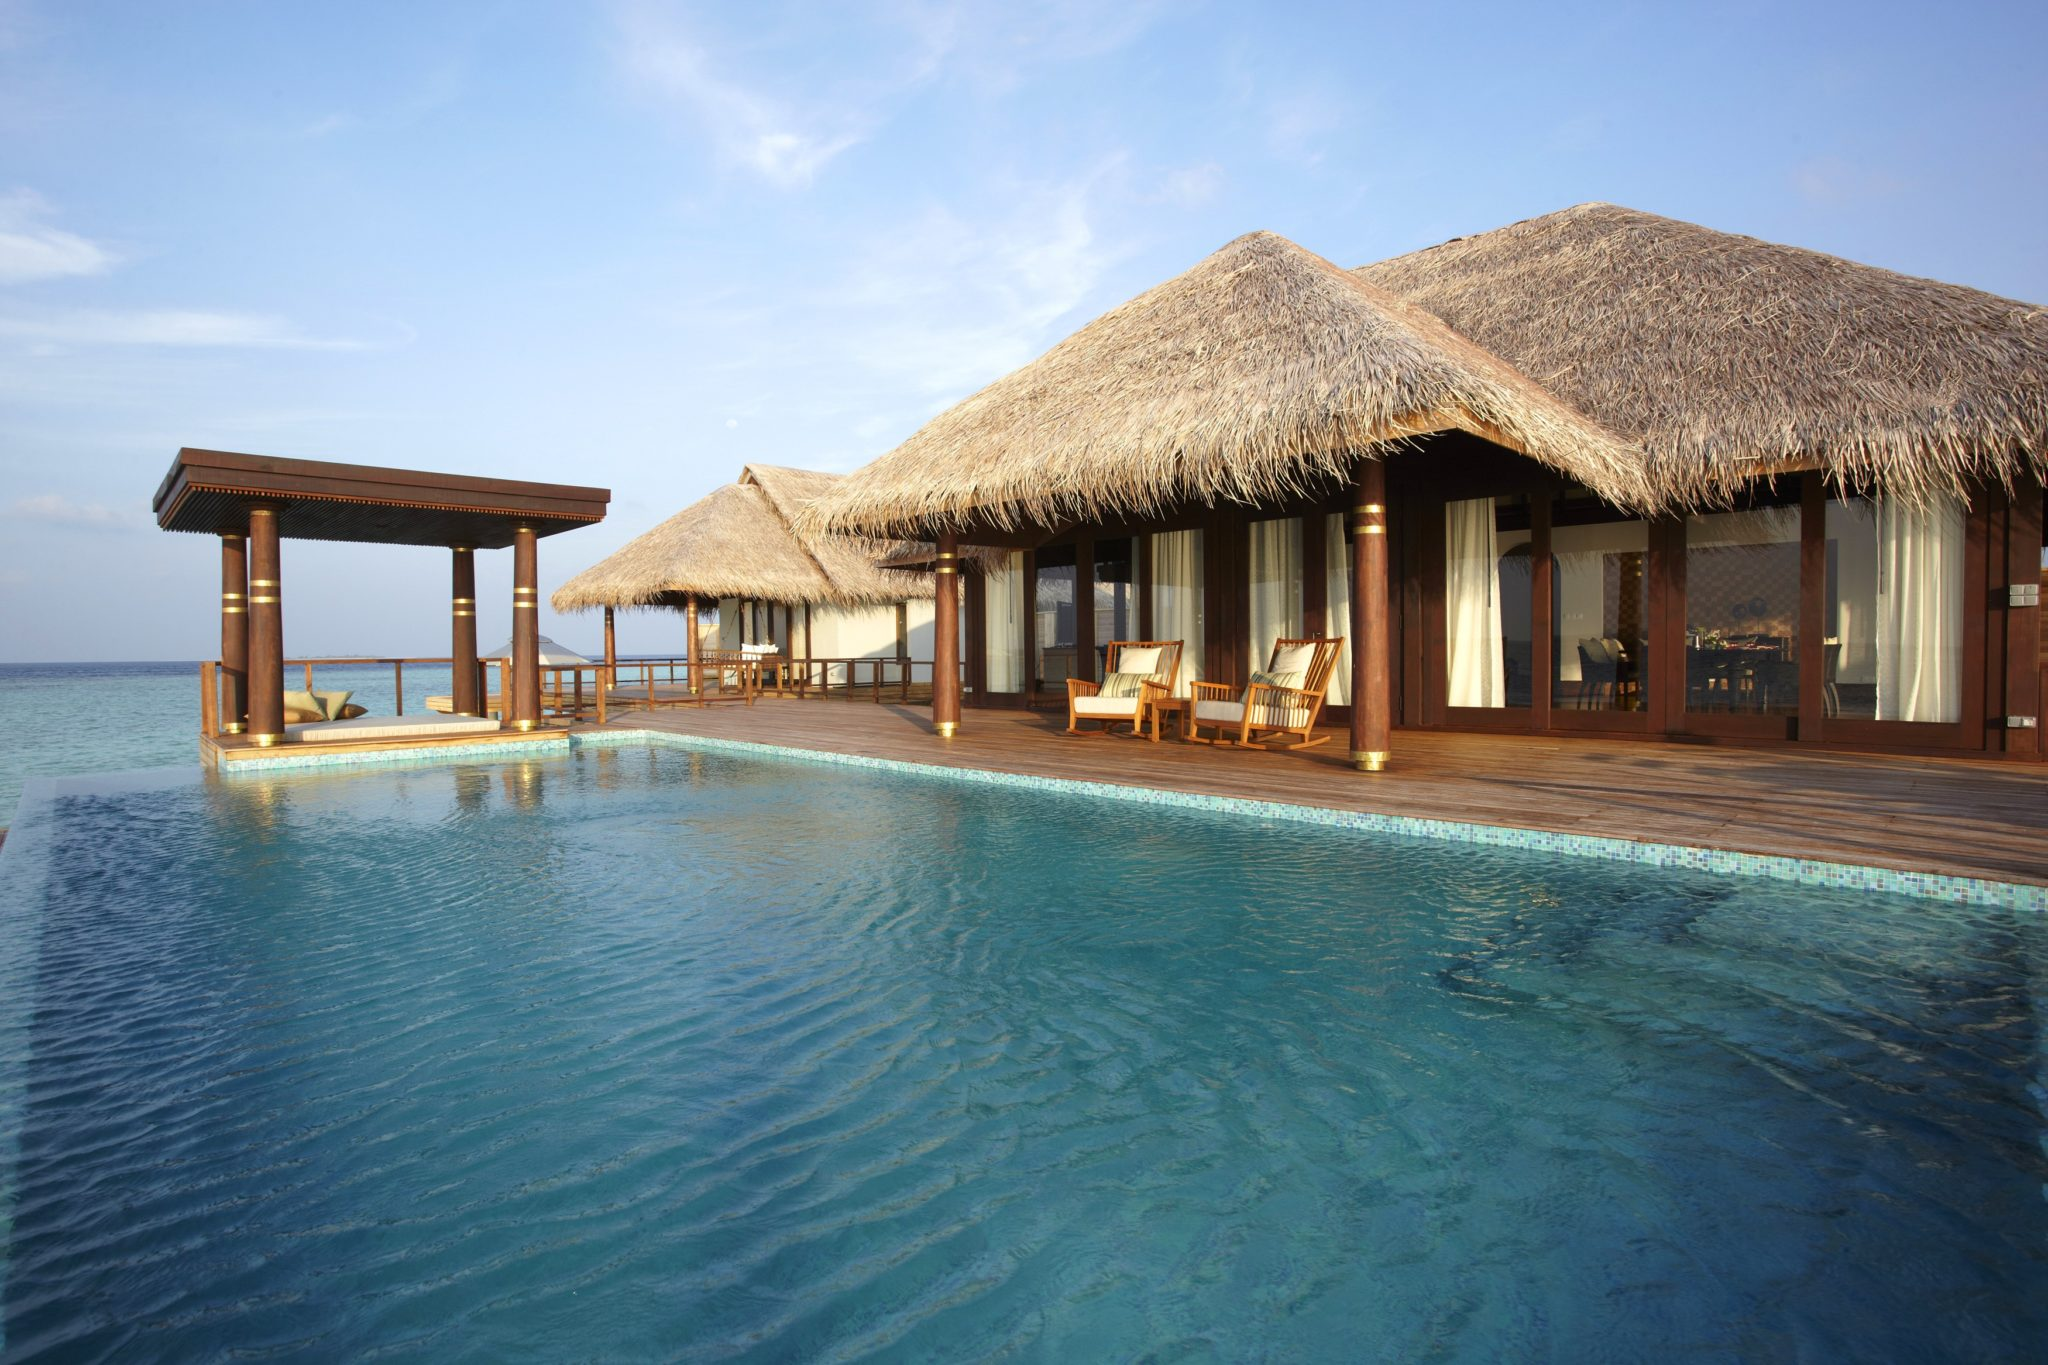 Qualia Jacuzzi Pool Villa Hotels With Private Pools Infinity Pools